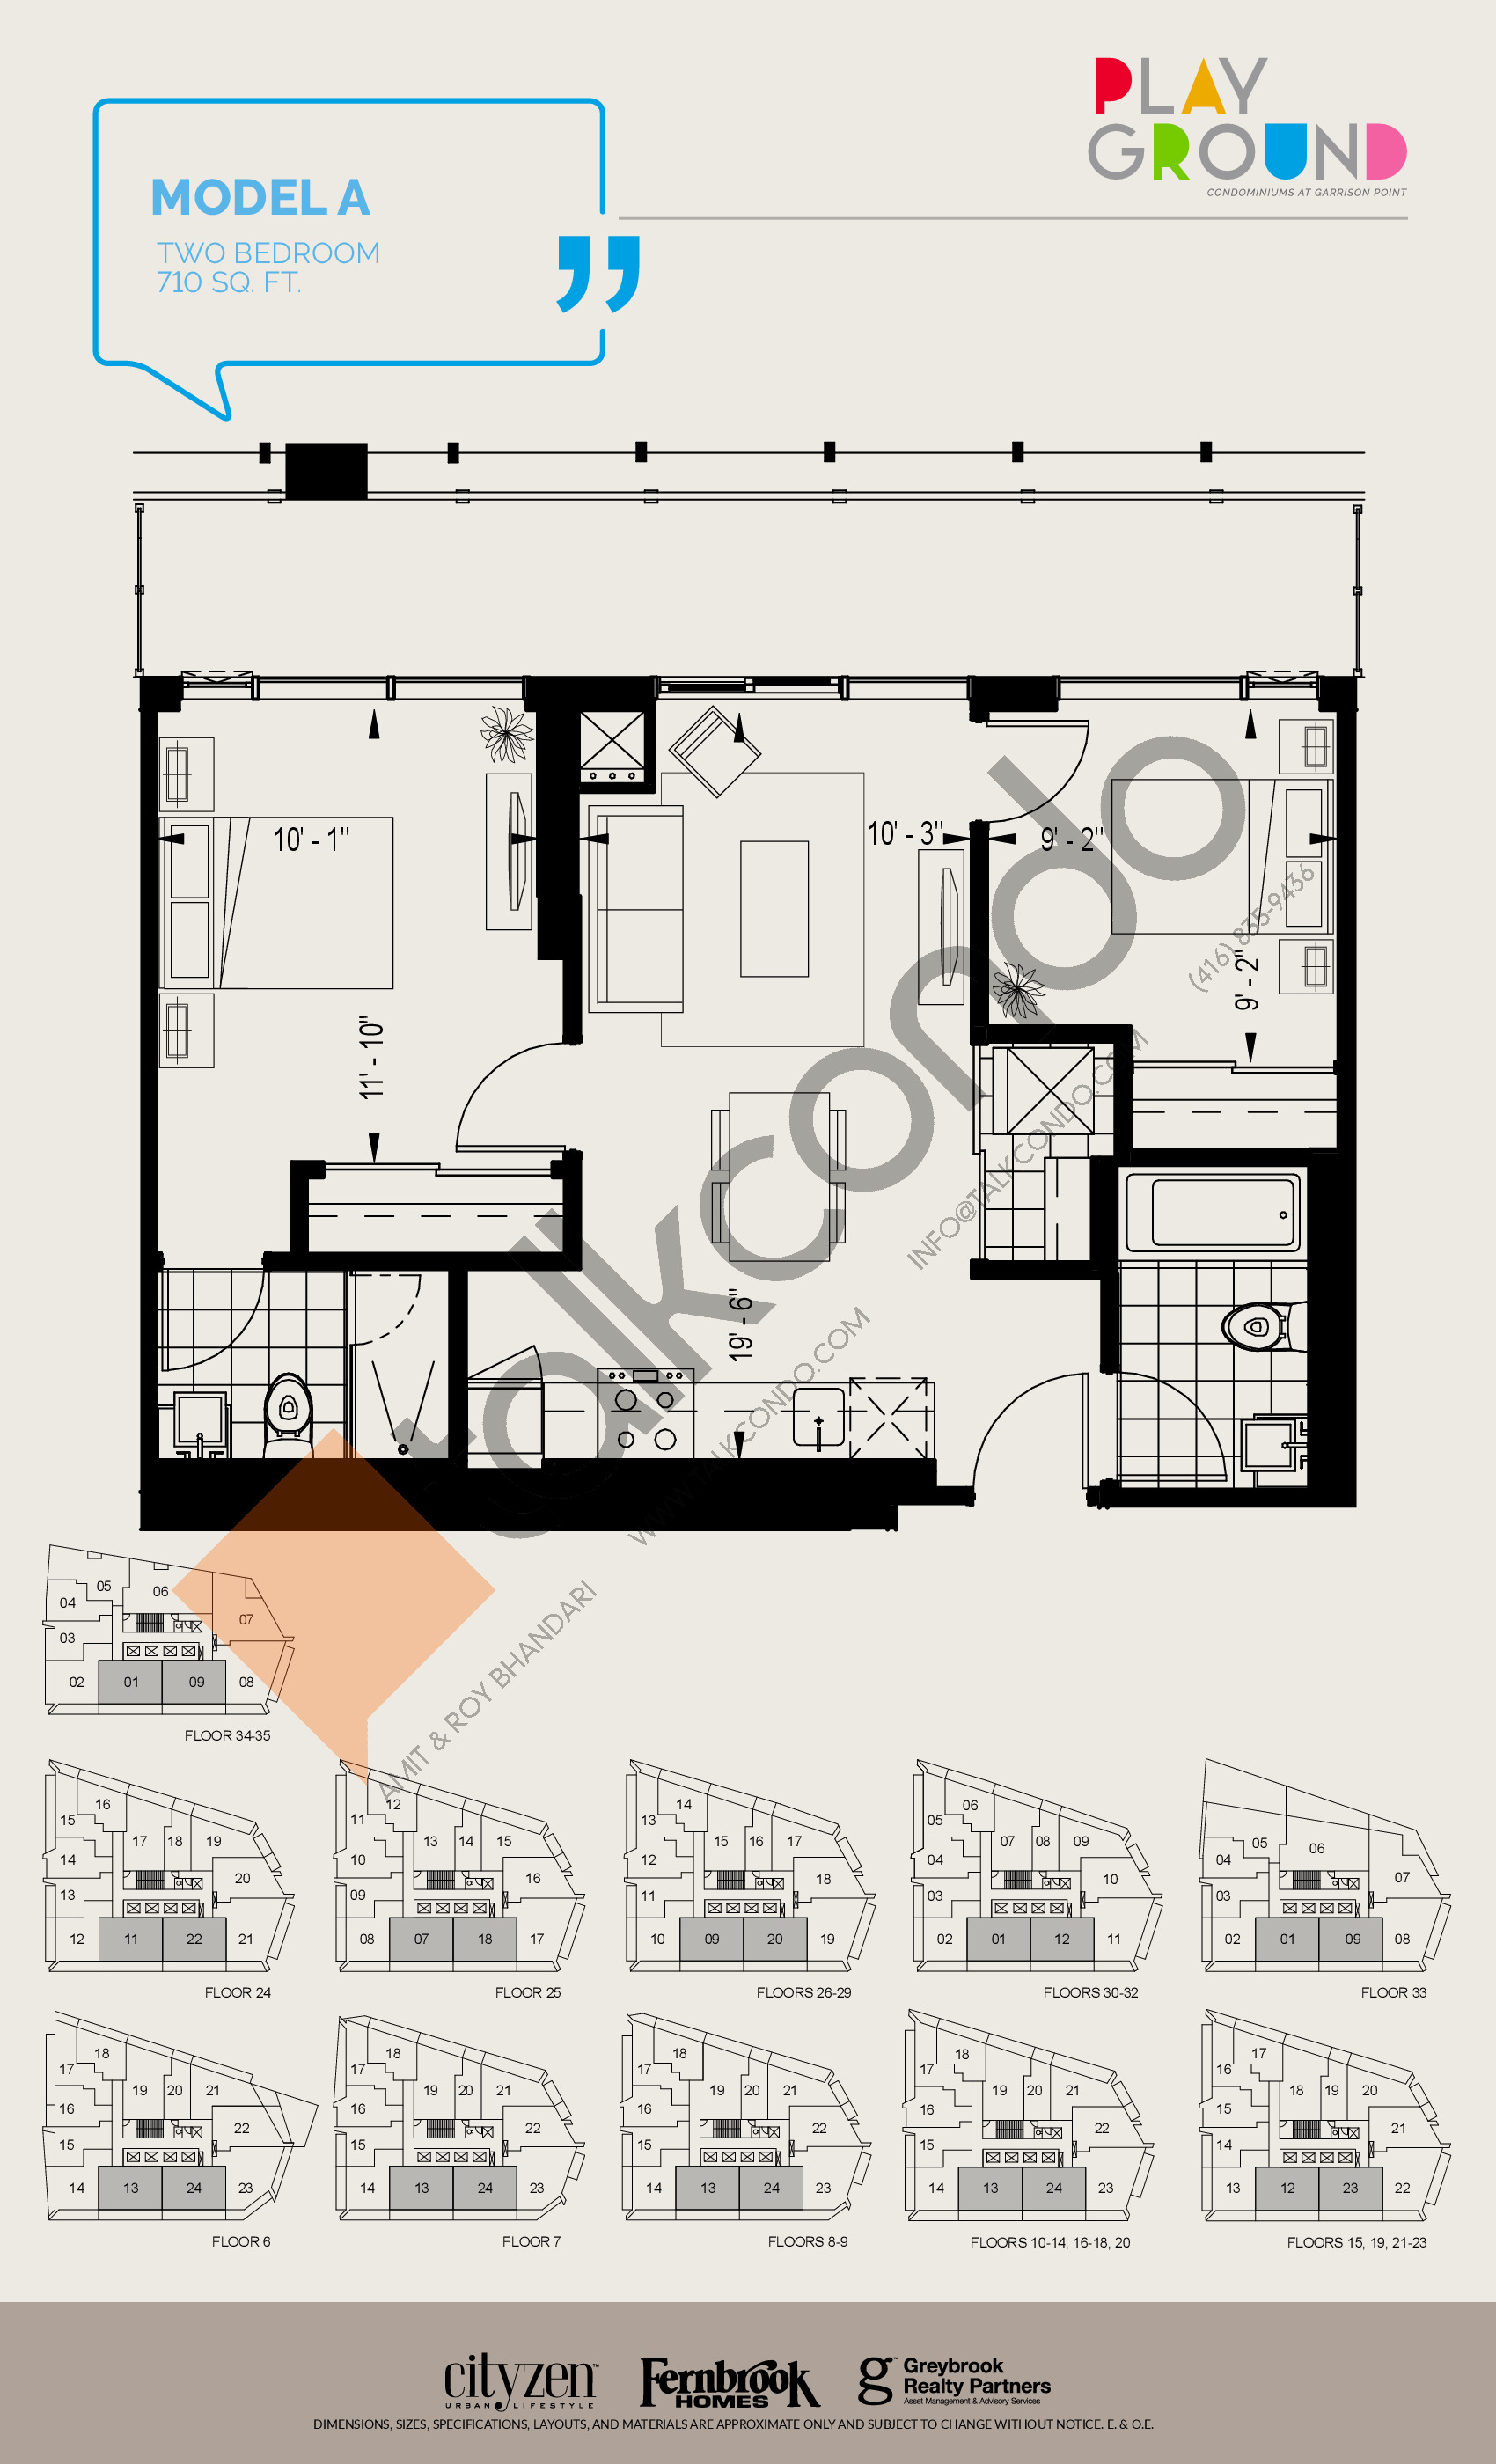 Model A Floor Plan at Playground Condos at Garrison Point - 710 sq.ft